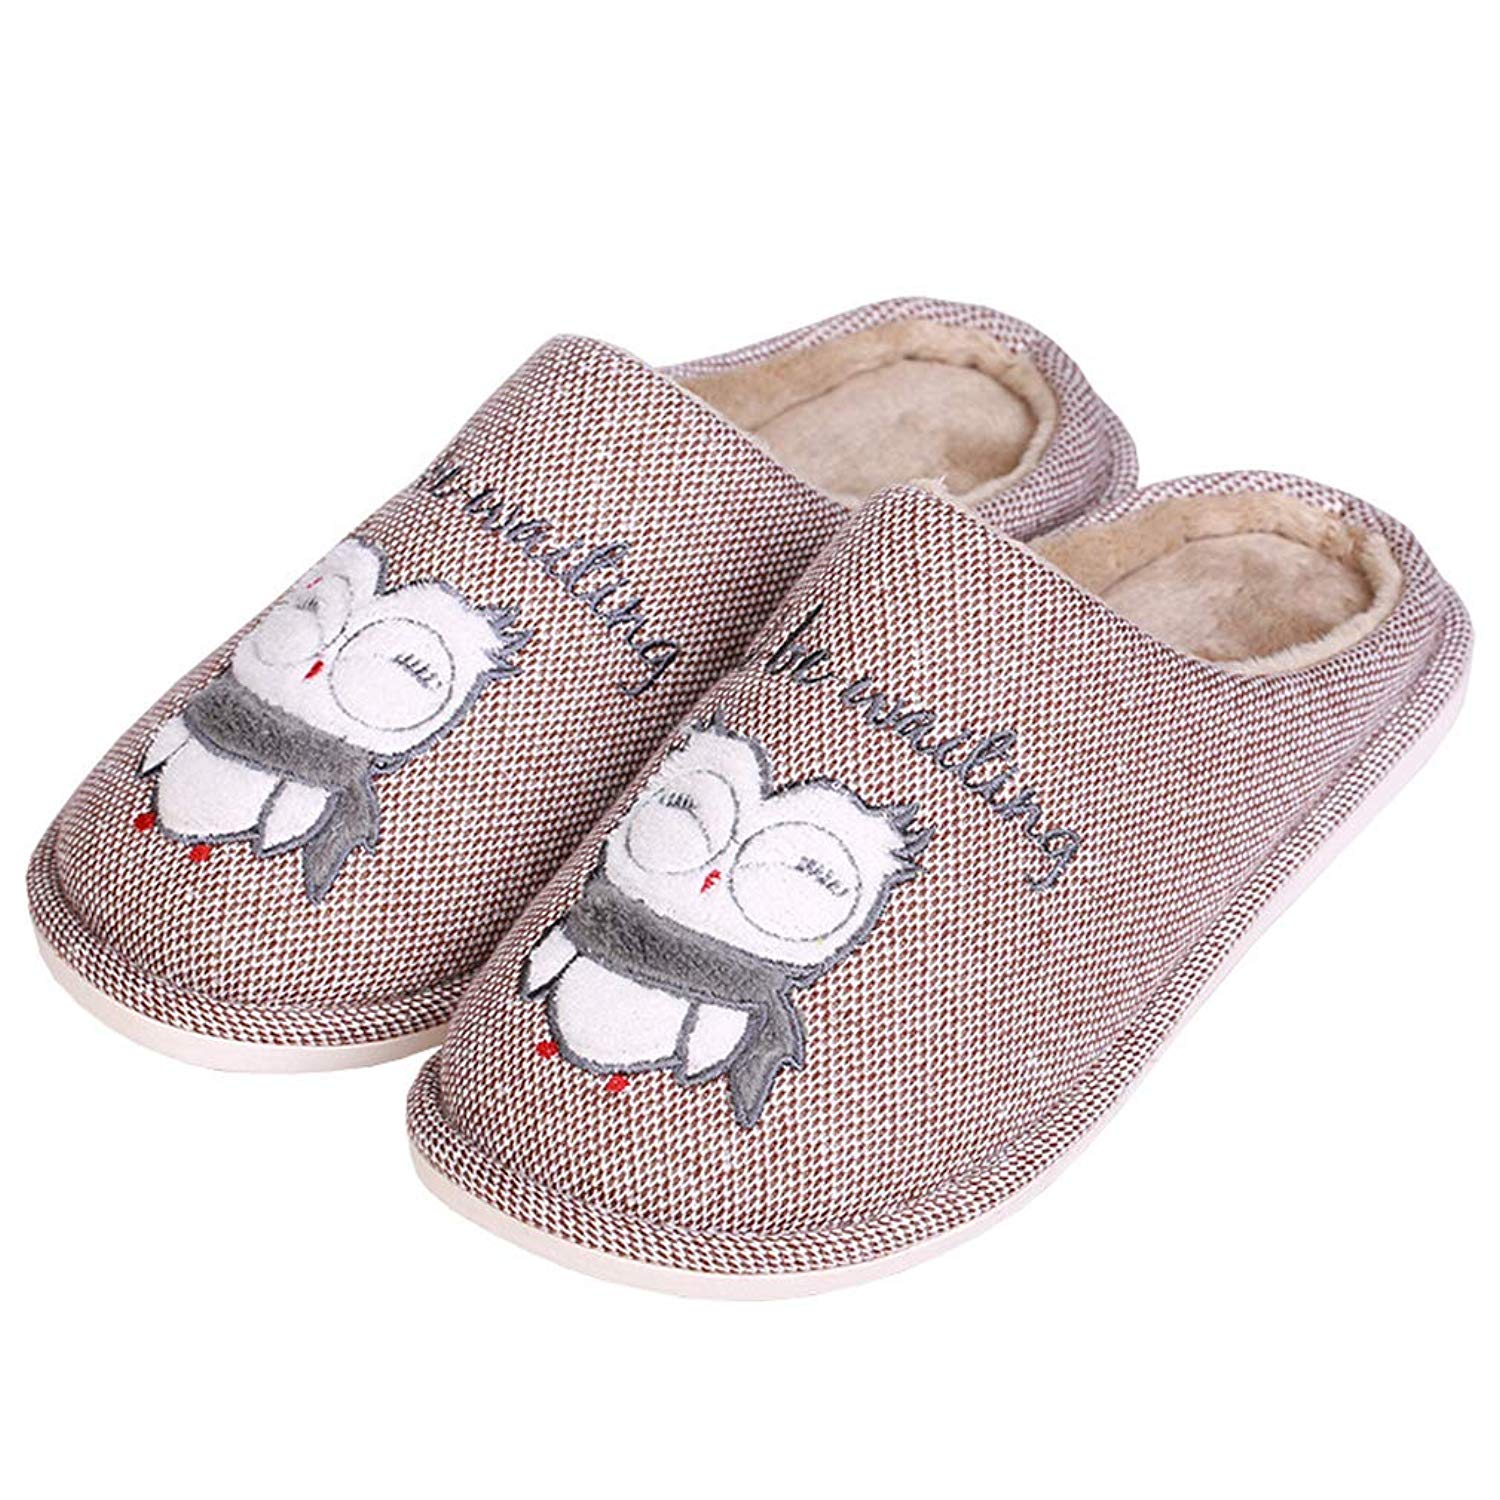 a3bbca1088d Get Quotations · ALOTUS Unisex Hand Knitted Warm Slippers with Colorful  Animal Cute Owl Indoor Outdoor